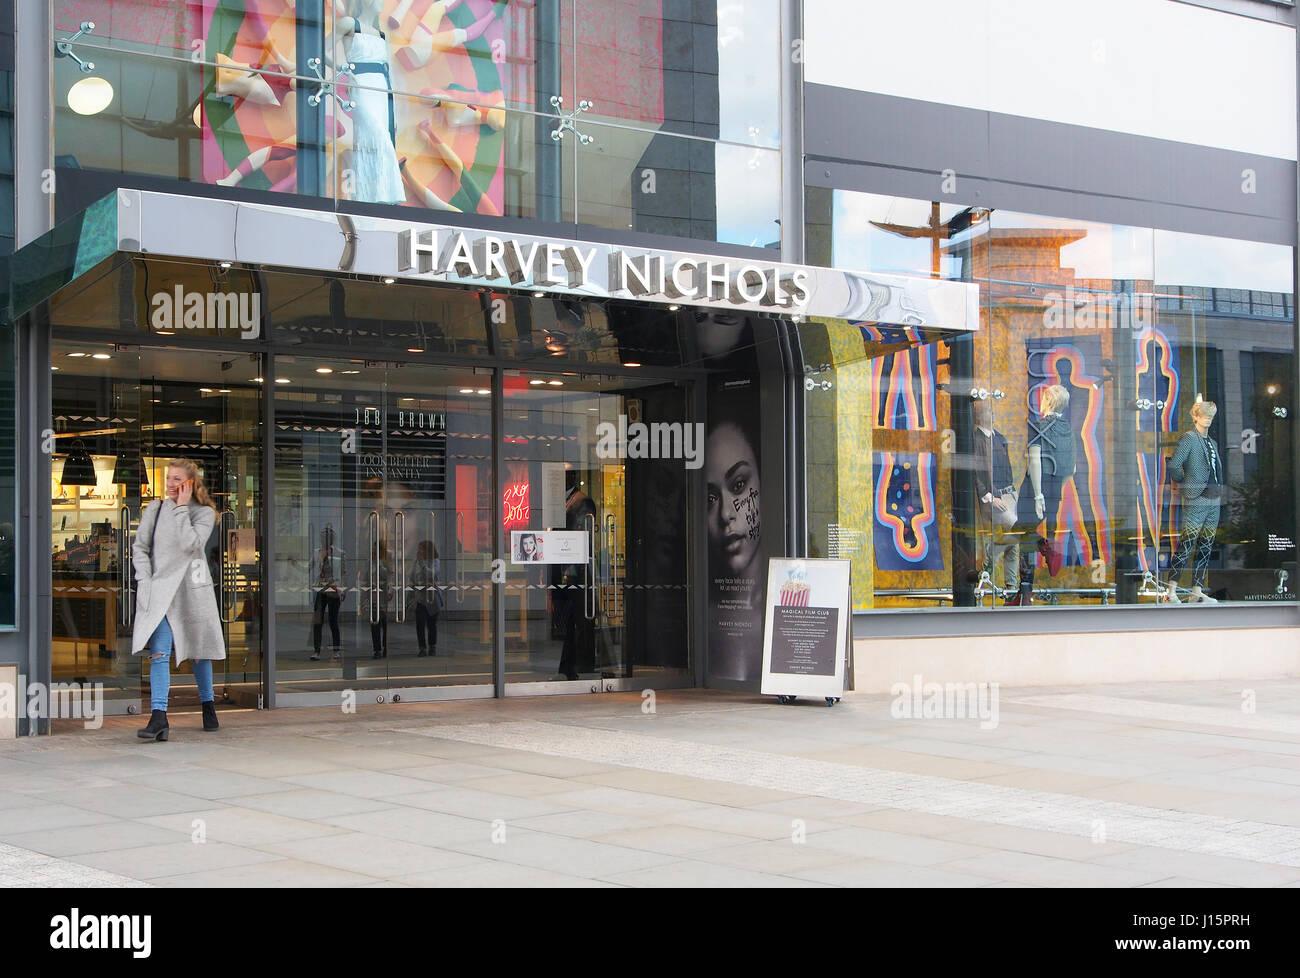 Exterior of Harvey Nichols shop store in the center of Manchester, England, with the colourful window displays and - Stock Image